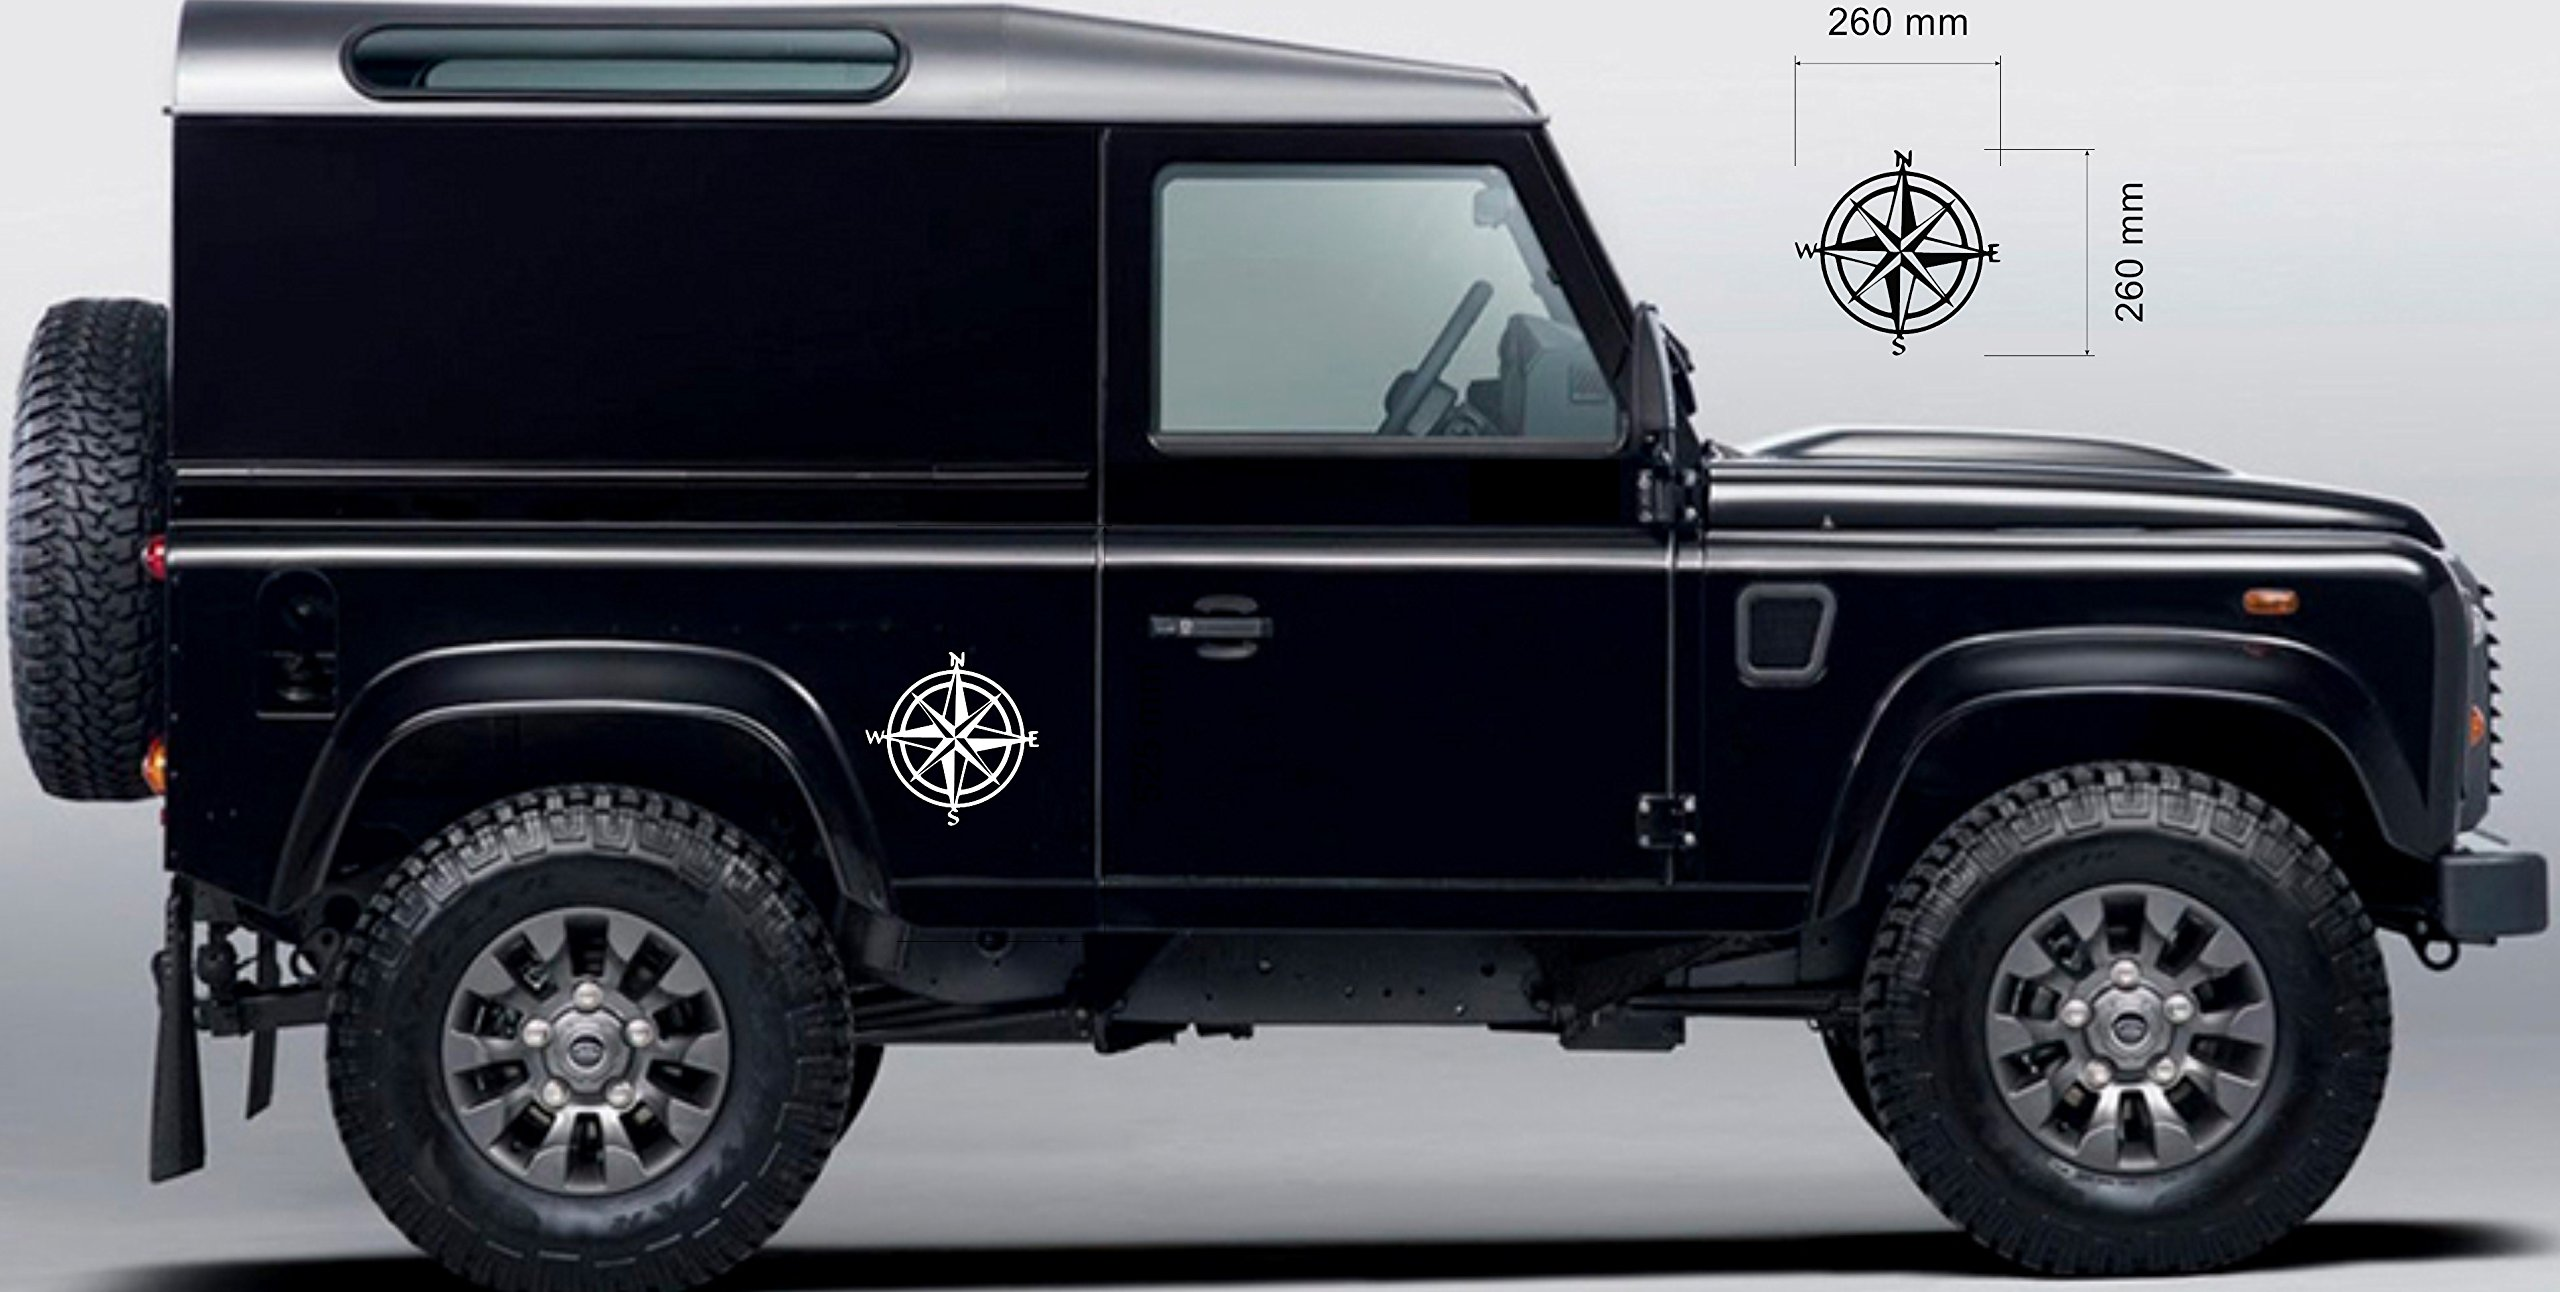 Off Road Style x 2 4x4 Compass Sticker Navigation Land Rover Decal